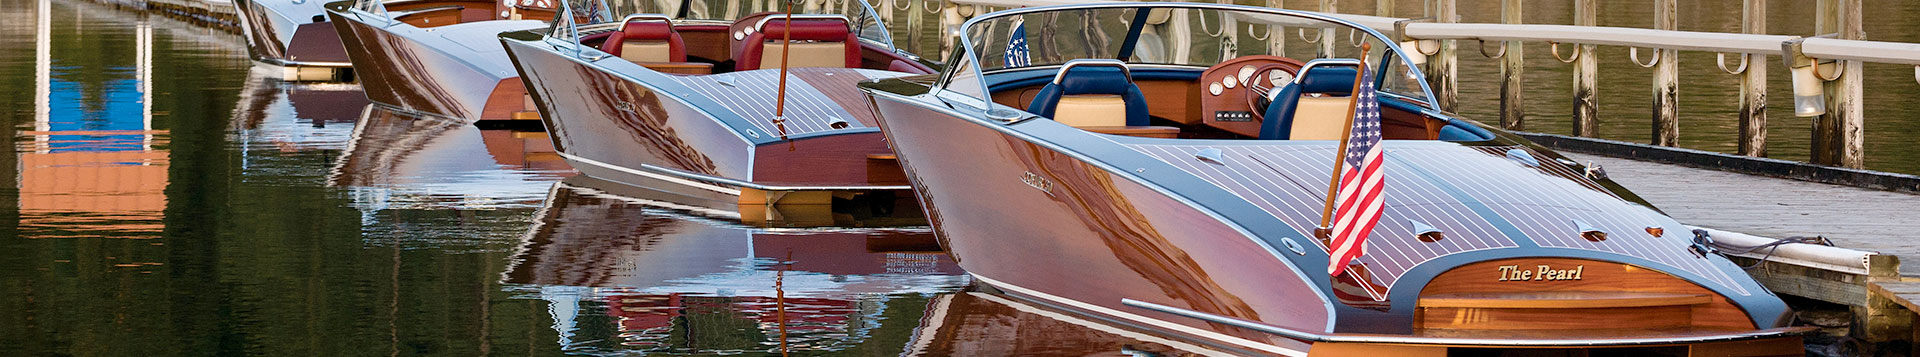 Antique and Classic Wooden Boat Show is an annual hit